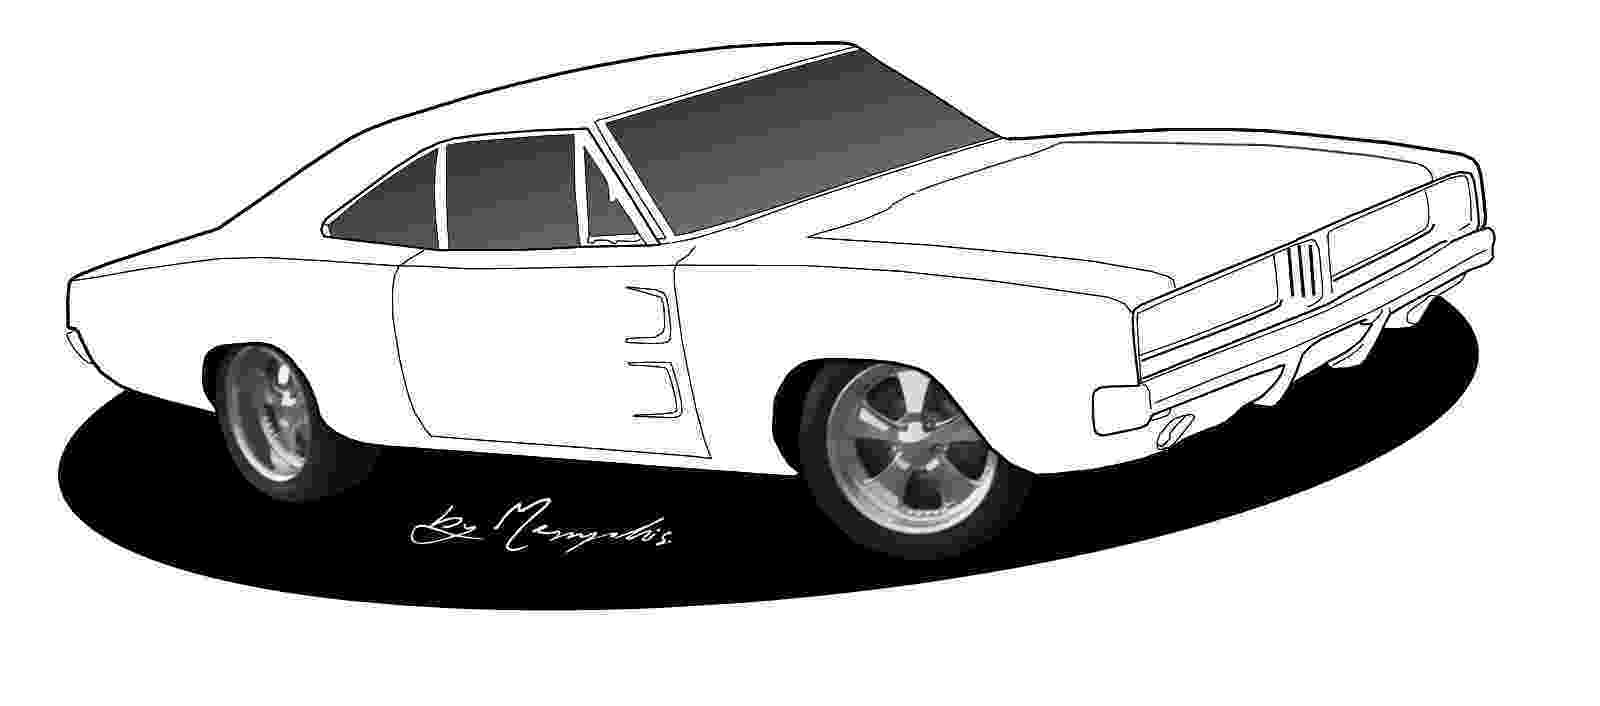 coloring pages muscle cars muscle car coloring pages to download and print for free muscle coloring pages cars